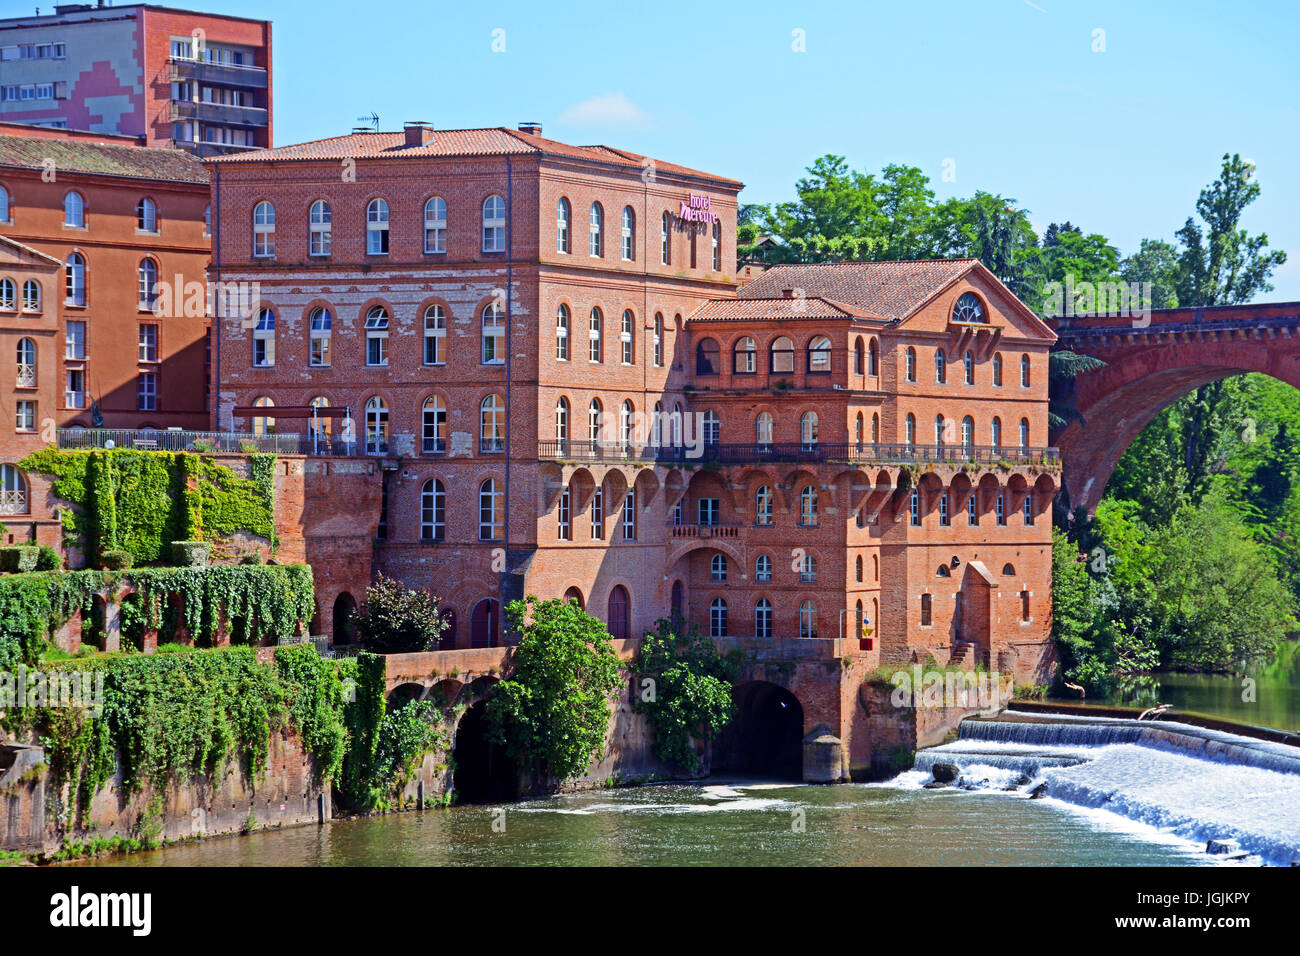 The Mercure hotel on Tarn riverside, Albi, Occitanie, France - Stock Image